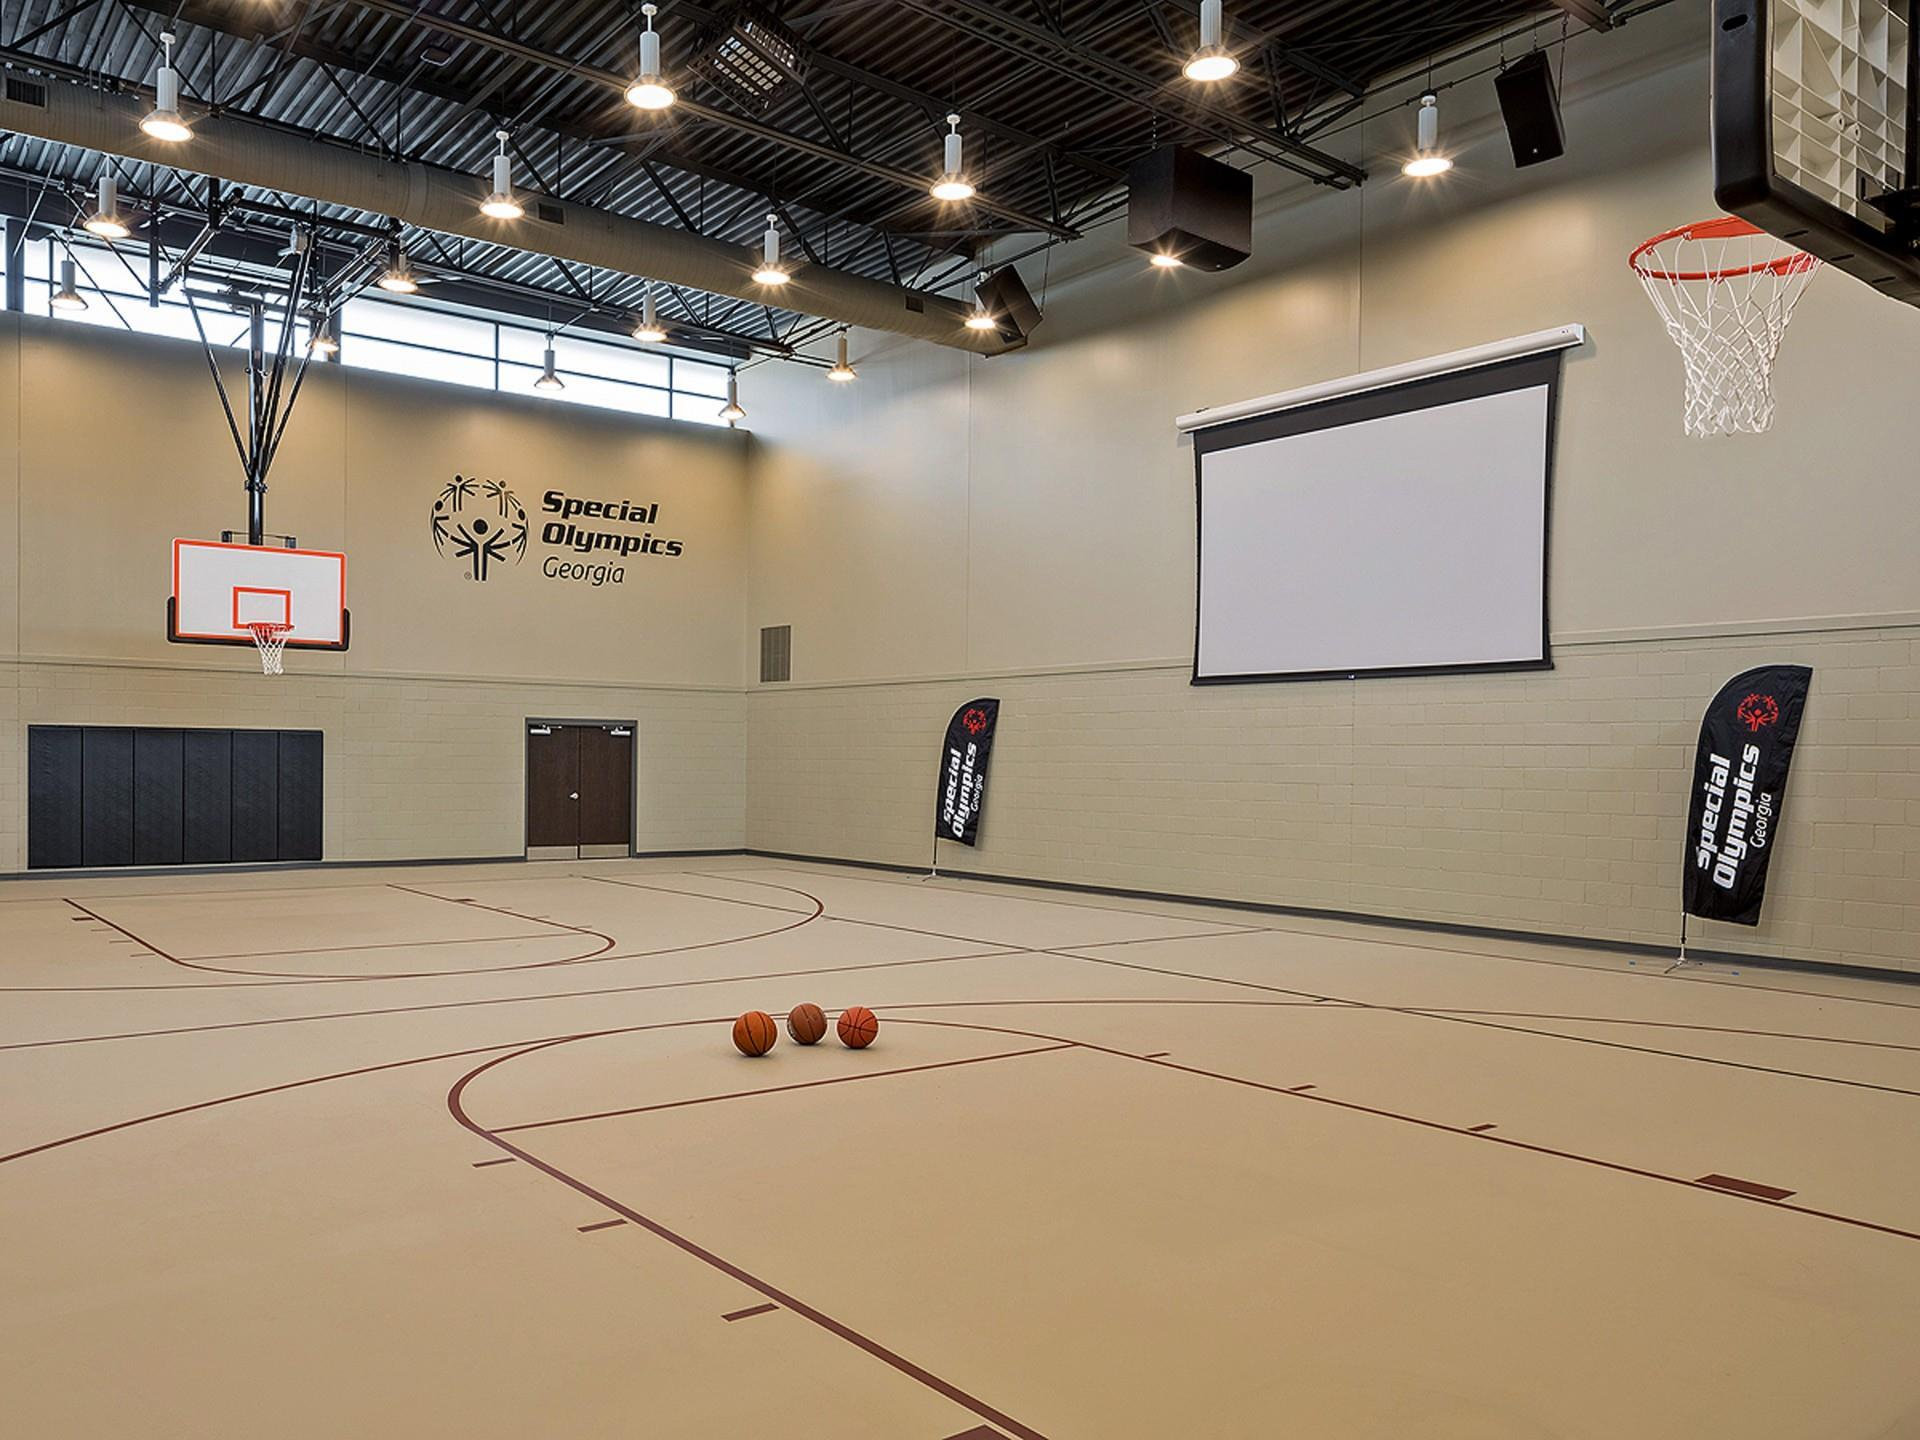 Empty basketball court with lights on, three basketballs center court, and projection screen